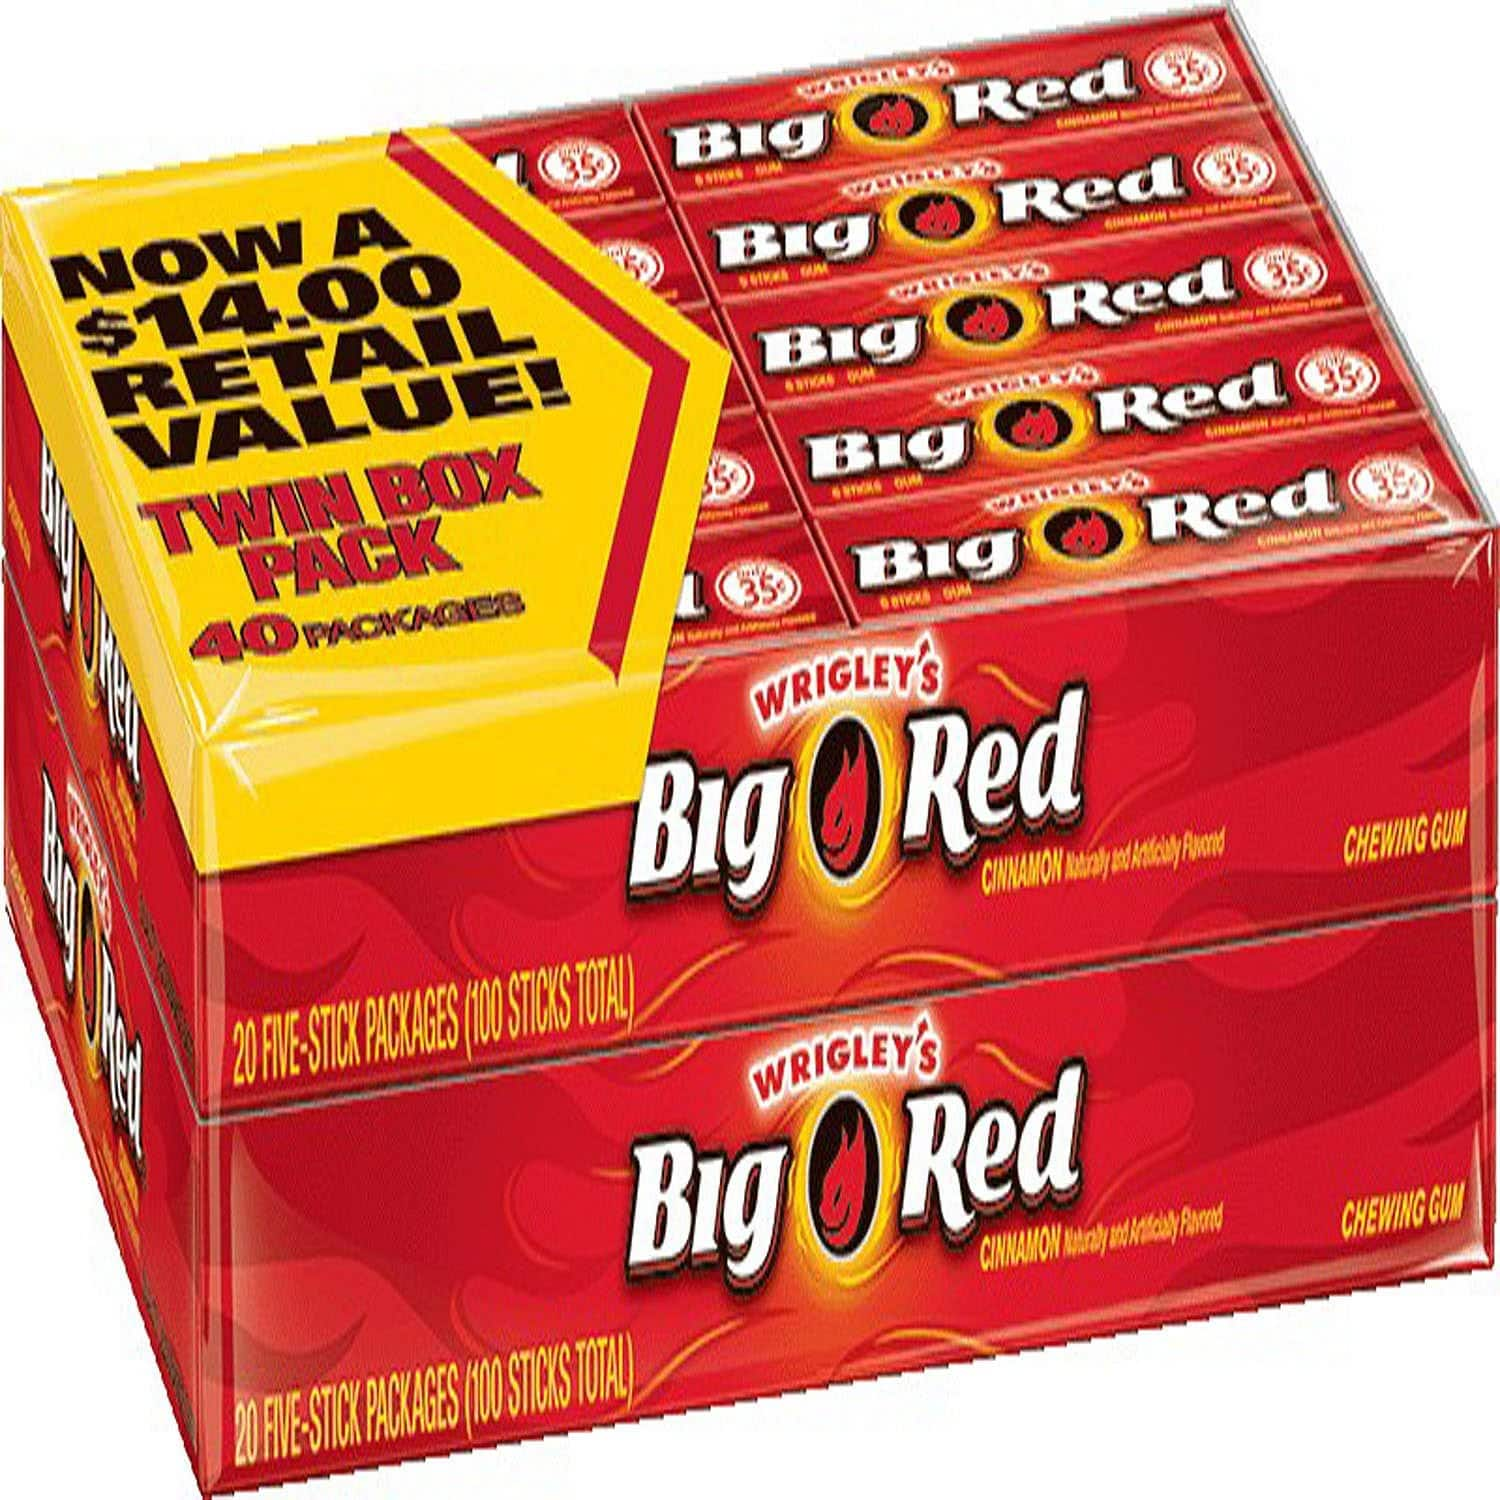 40-Pack Wrigleys Big Red Cinnamon Chewing Gum $7 + Free Shipping w/ Prime